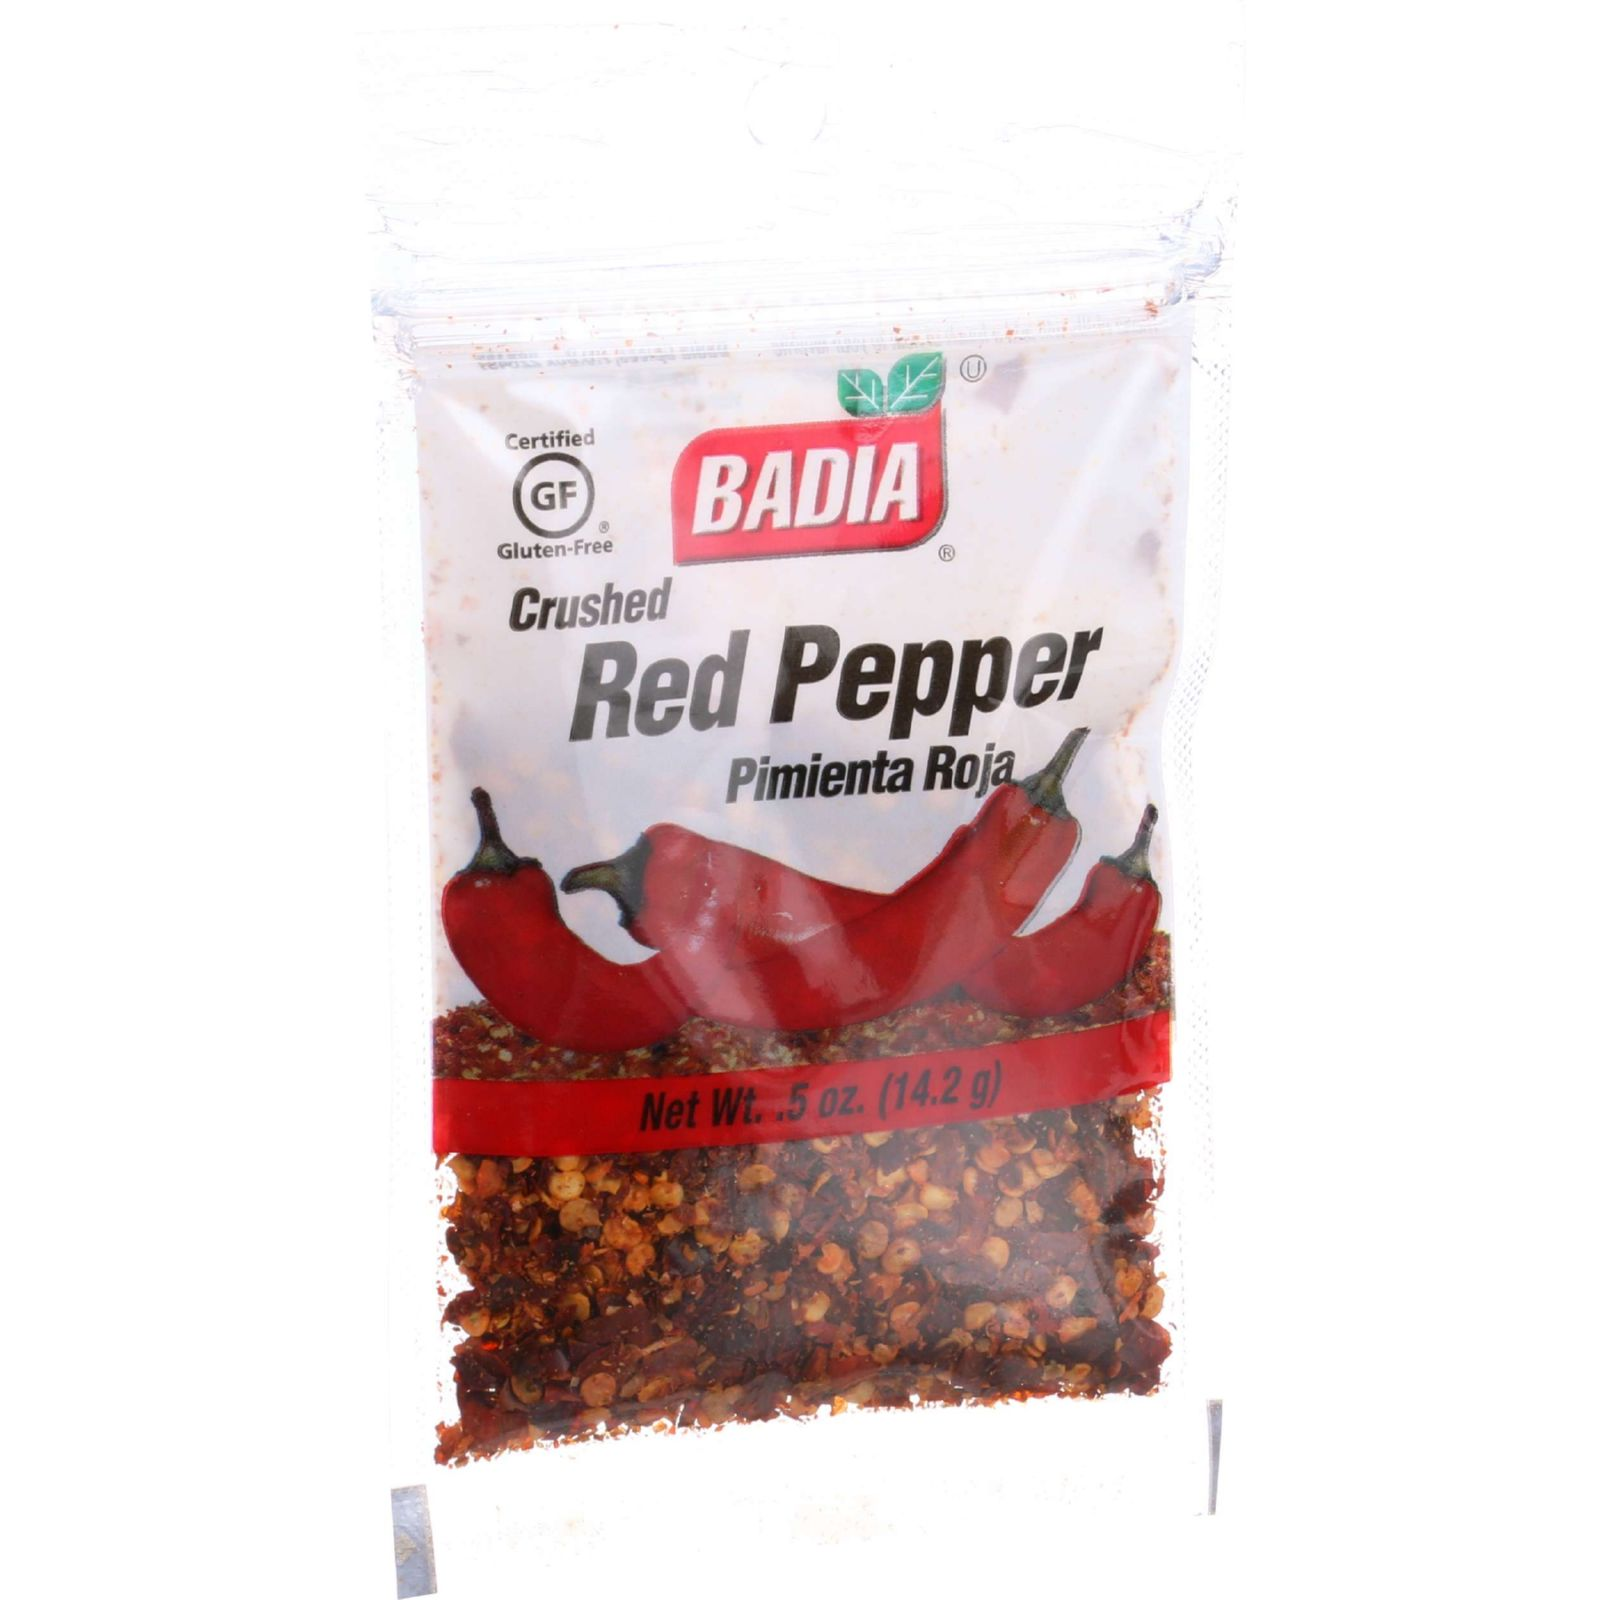 Badia Spices Red Pepper - Crushed - .5 oz - Case of 12